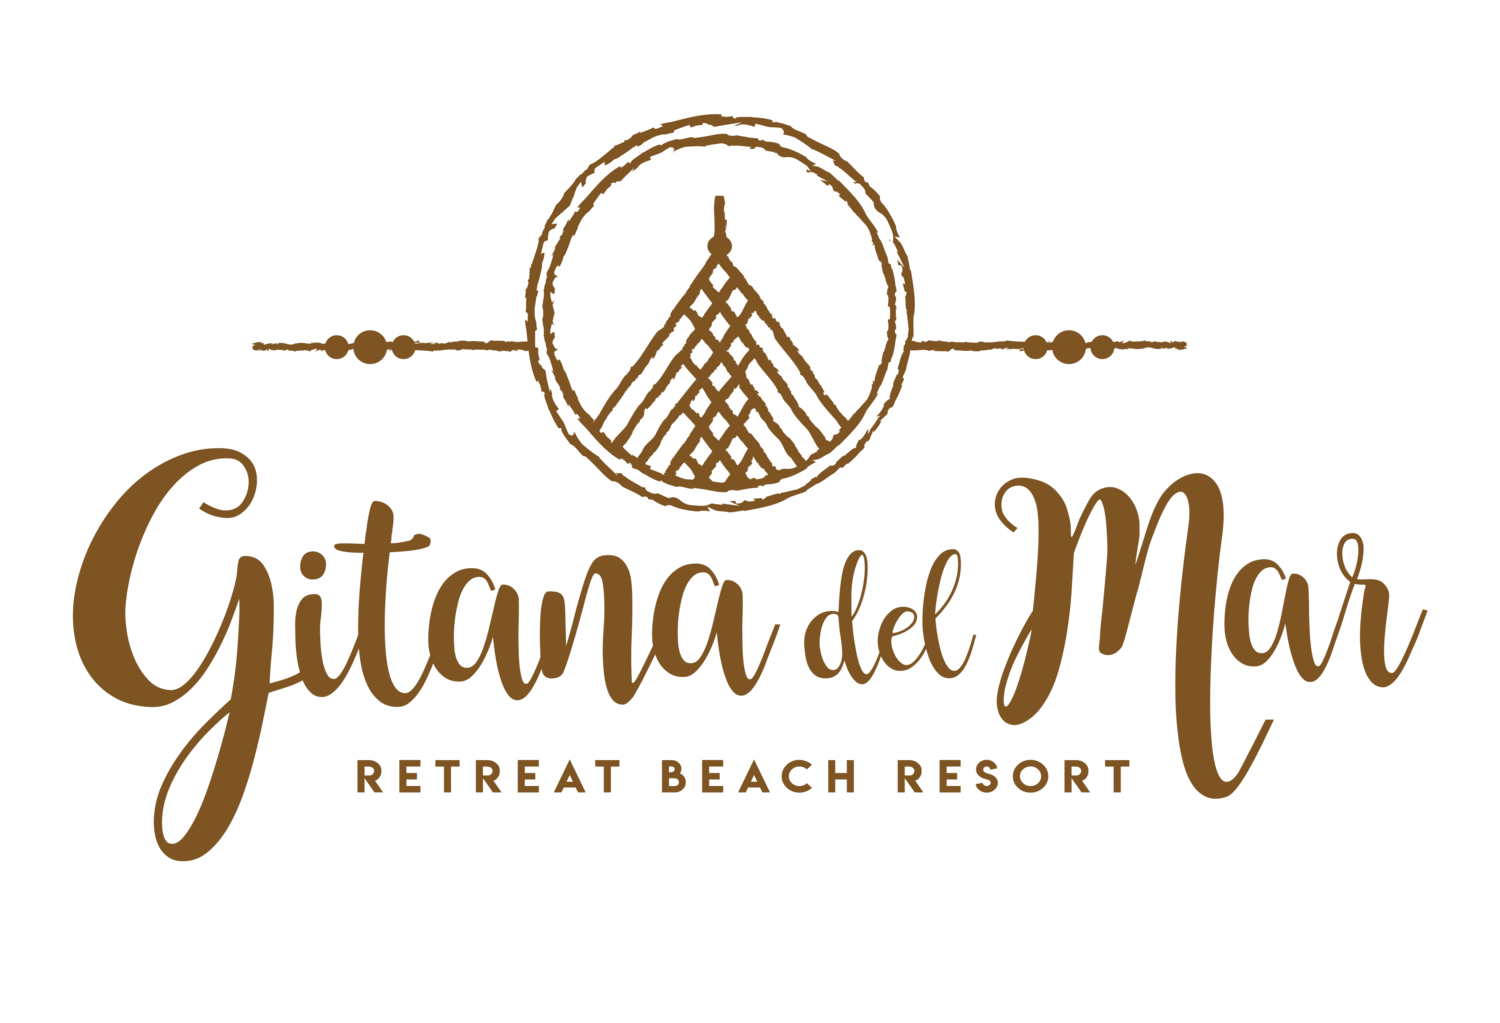 Gitana del Mar Retreat Beach Resort